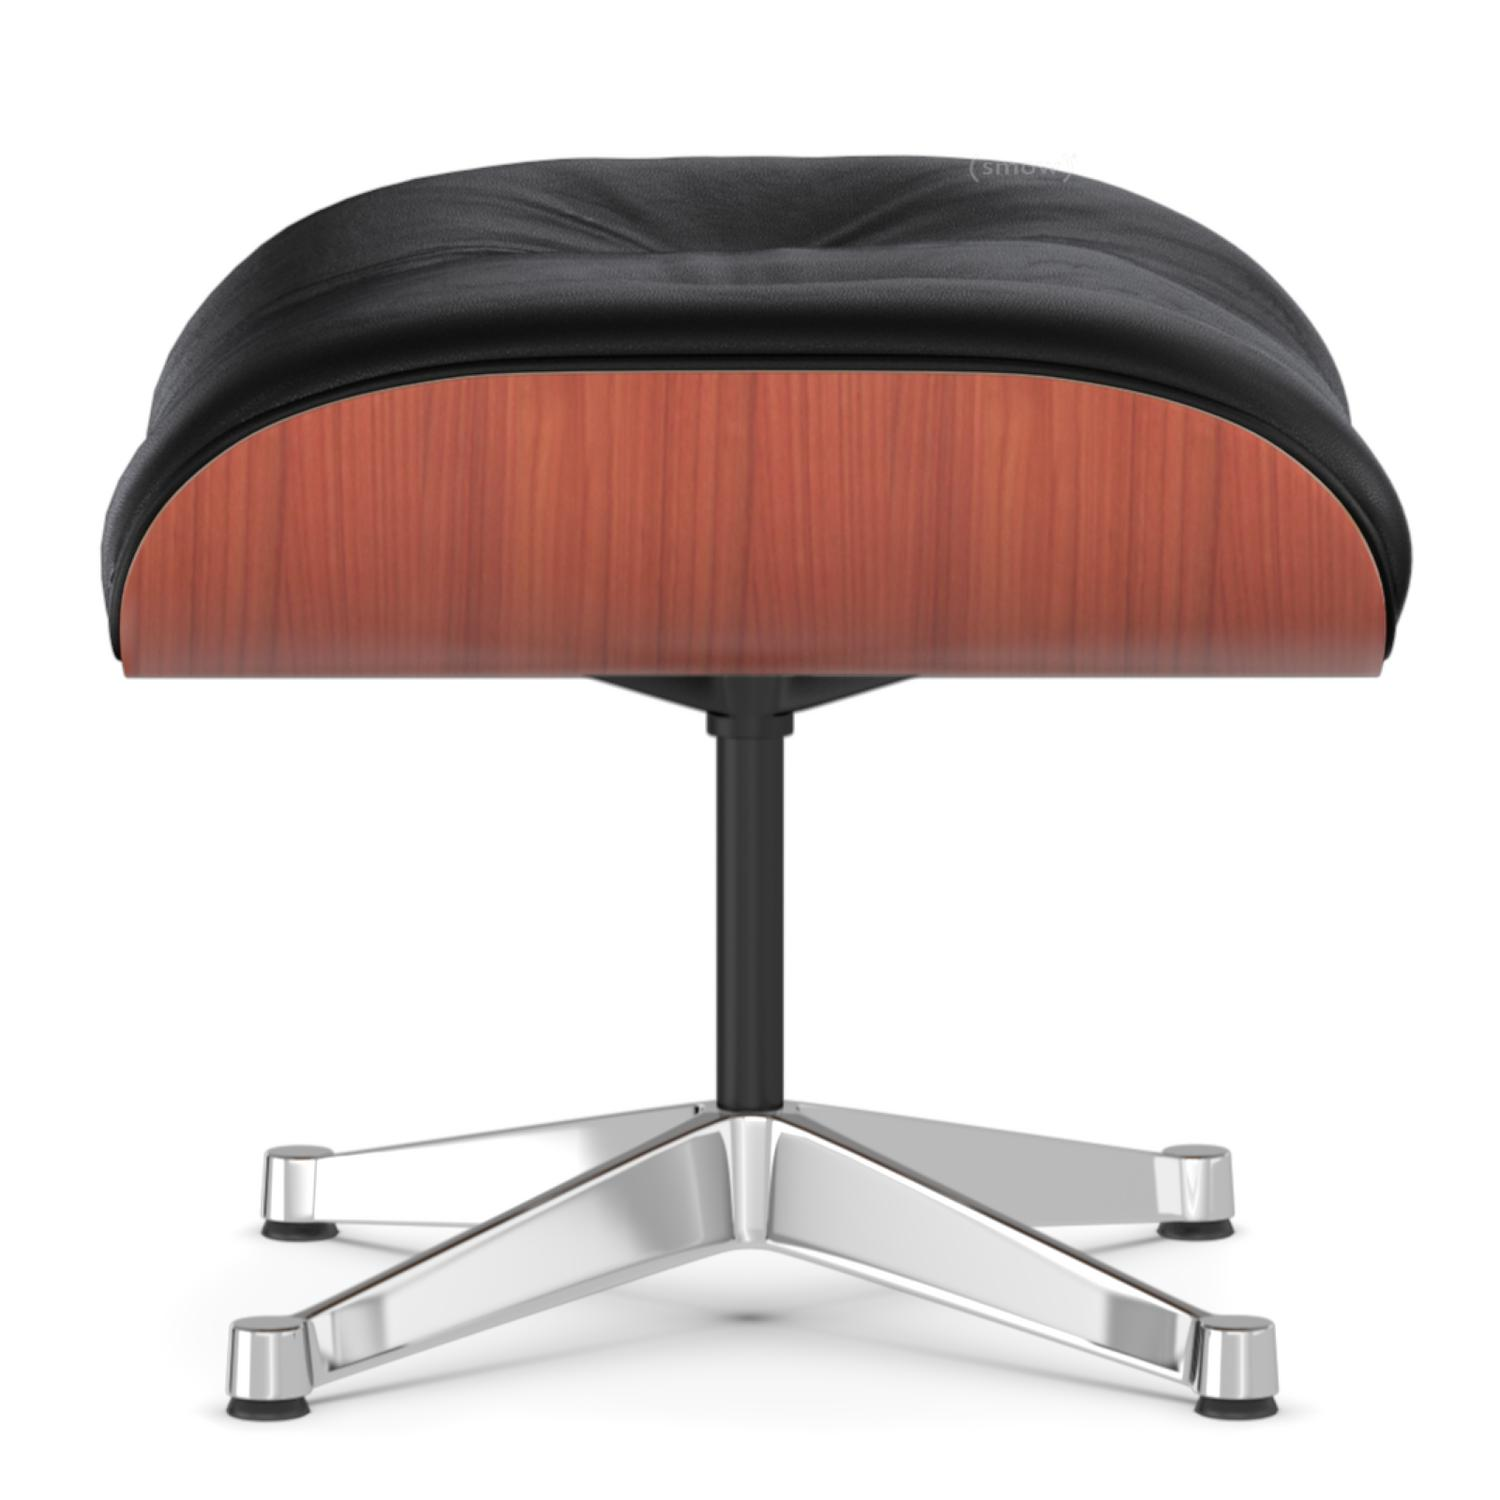 vitra lounge chair ottoman cherry nero aluminium chrome. Black Bedroom Furniture Sets. Home Design Ideas